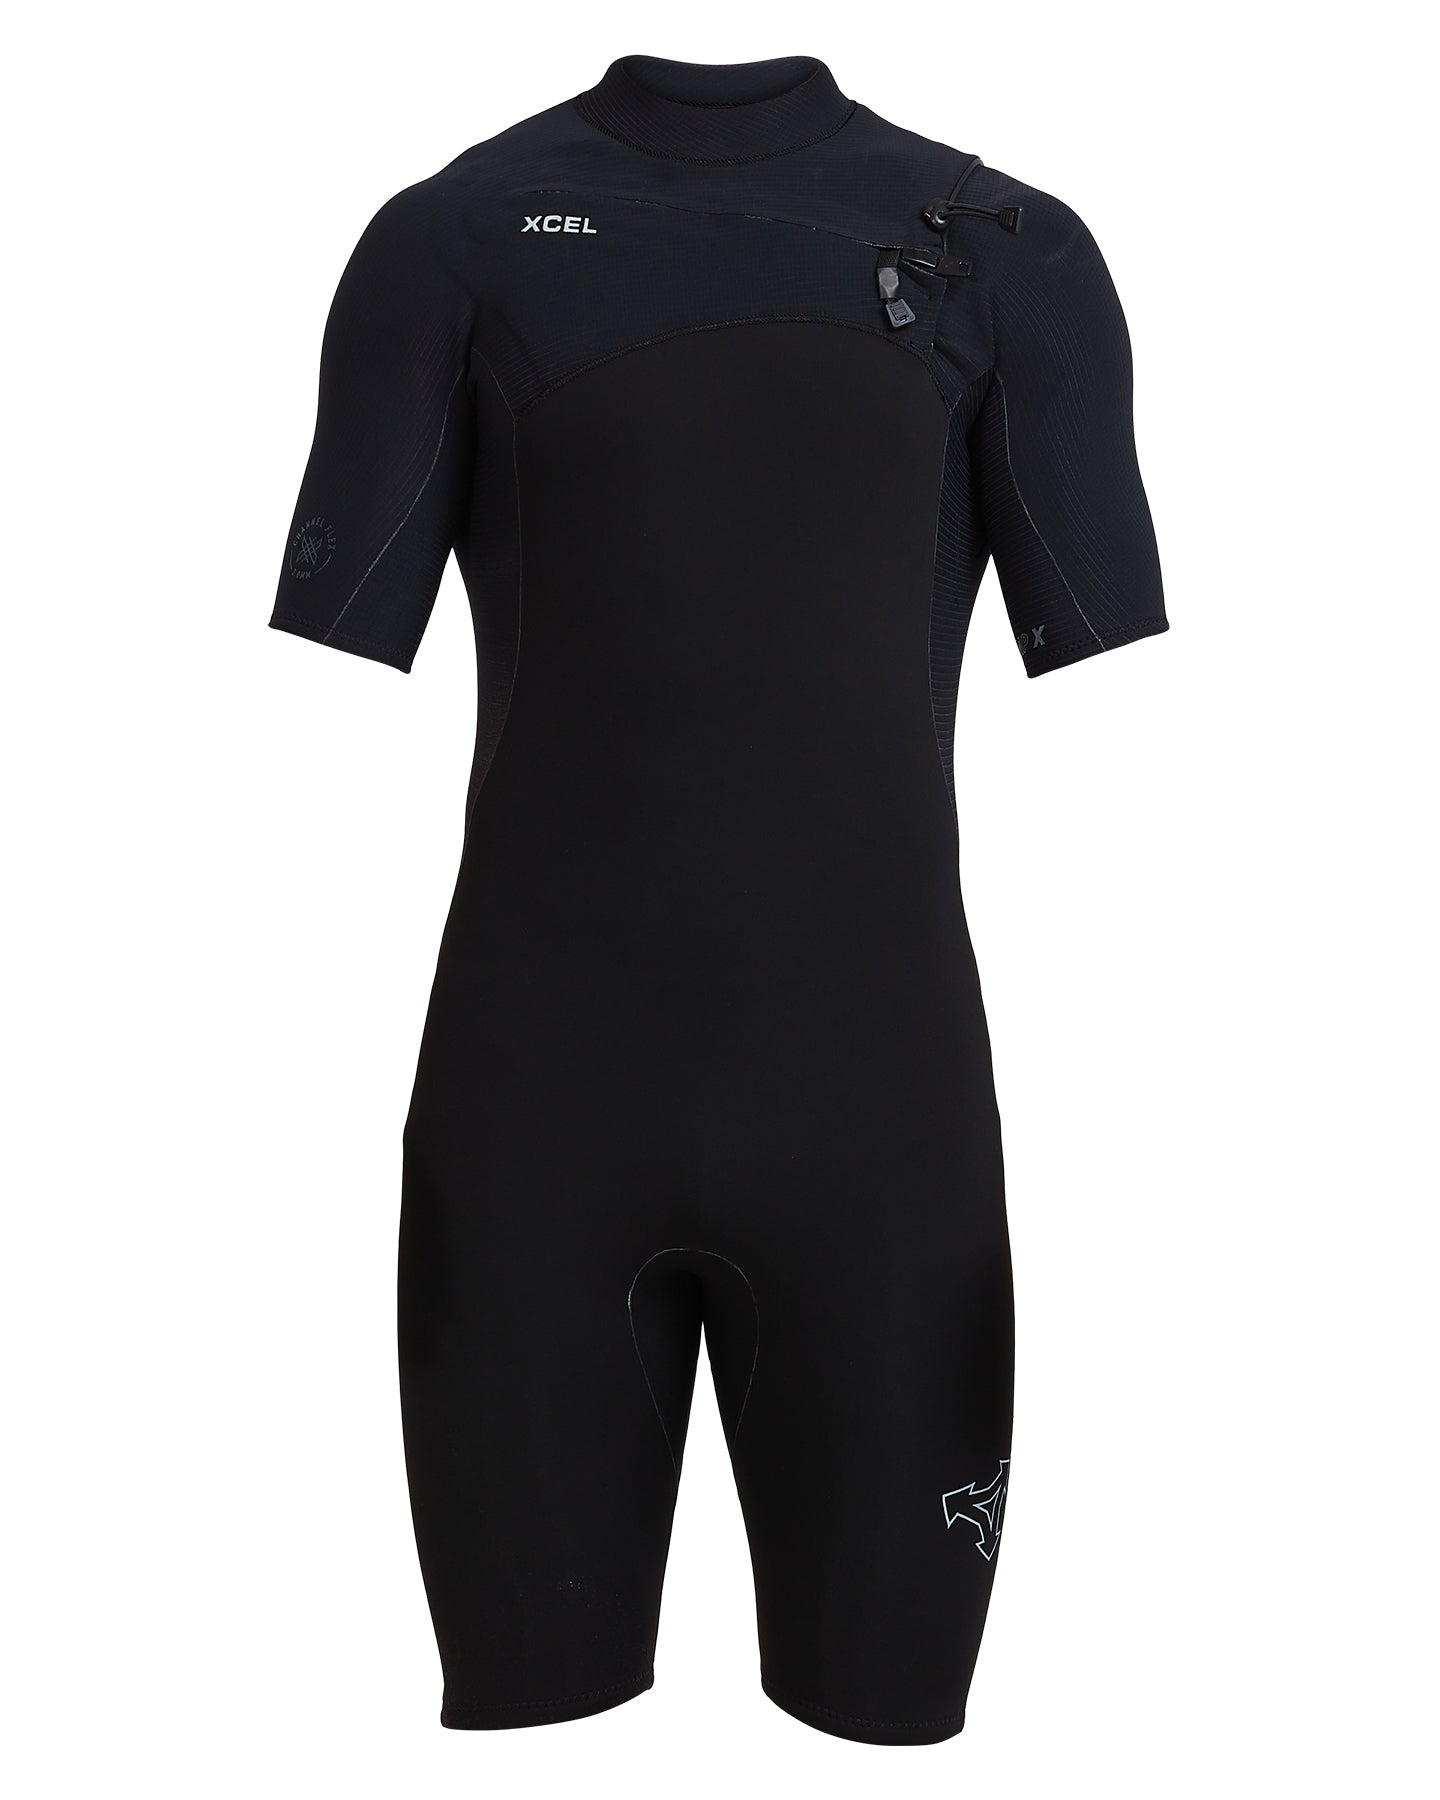 MENS COMP X 2MM SHORT SLEEVE SPRING SUIT - Board Store XcelWetsuits